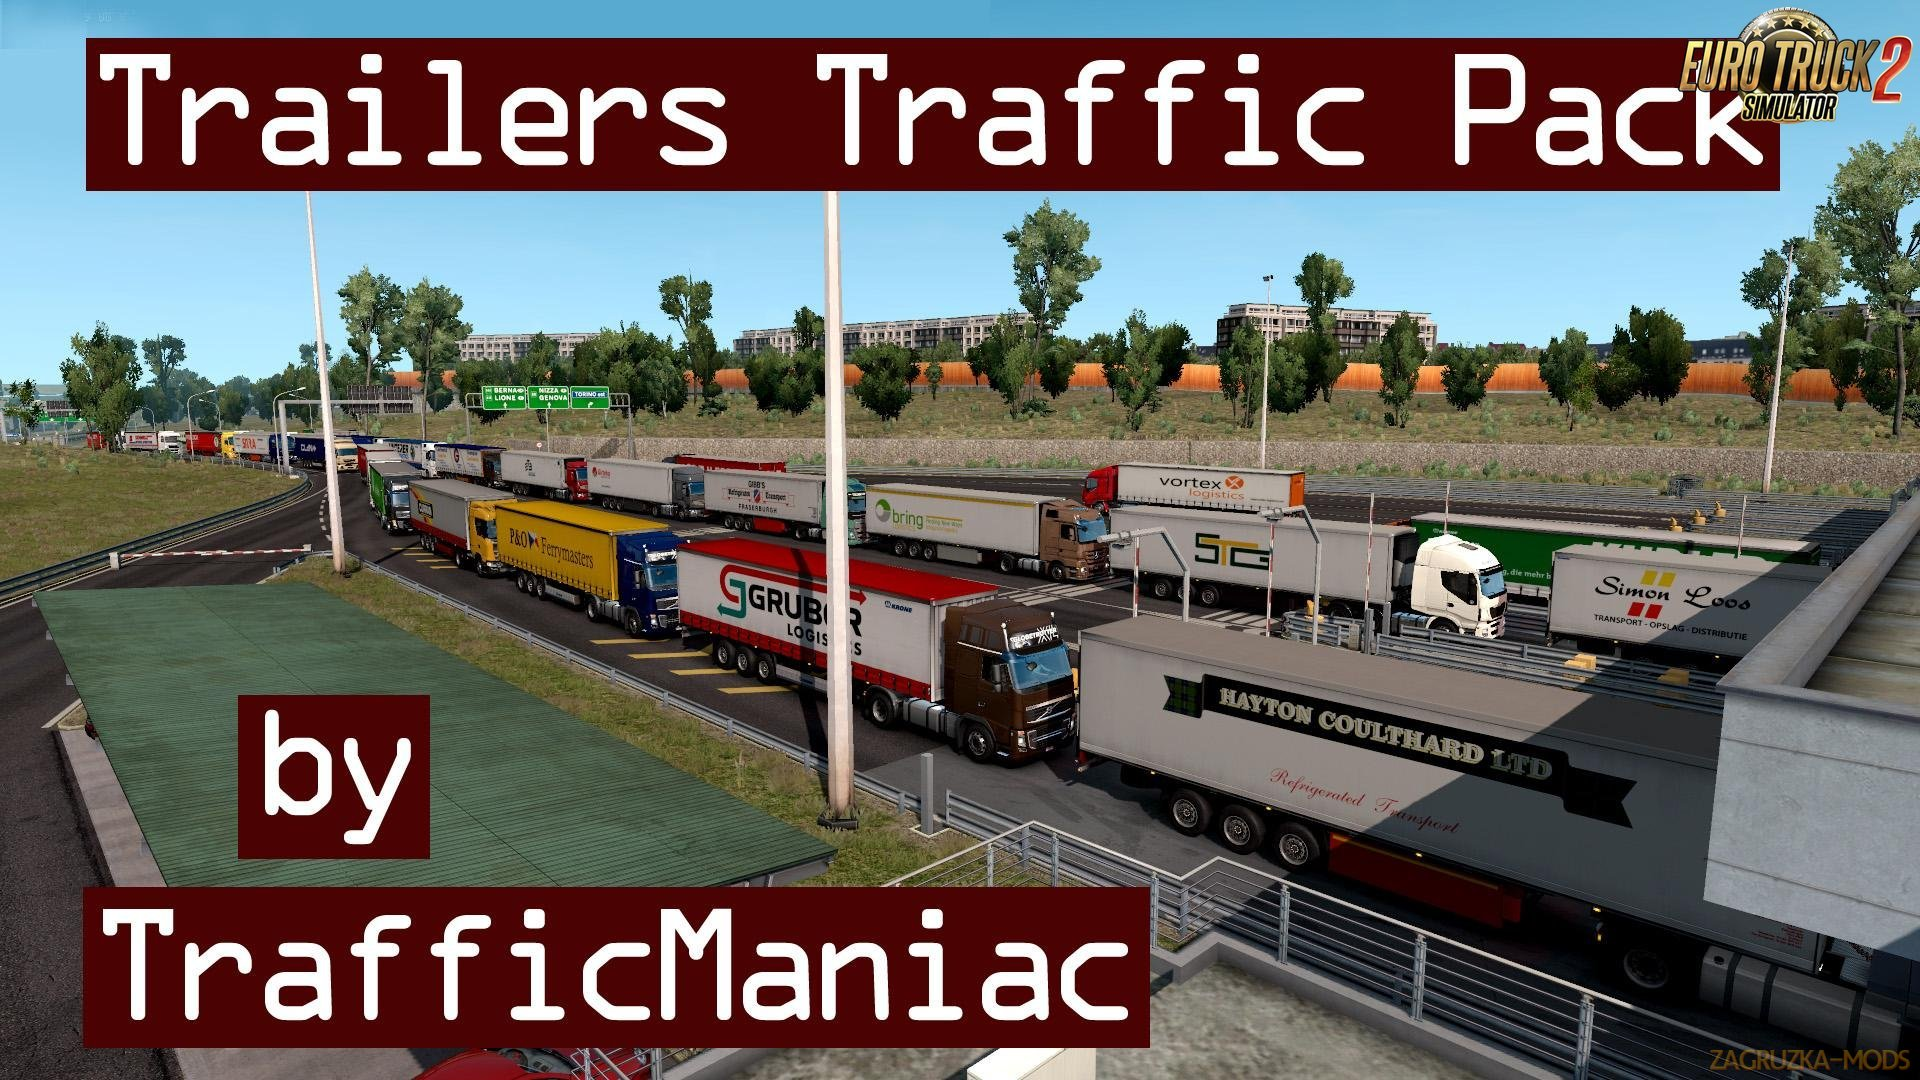 Trailers Traffic Pack v1.2 by TrafficManiac